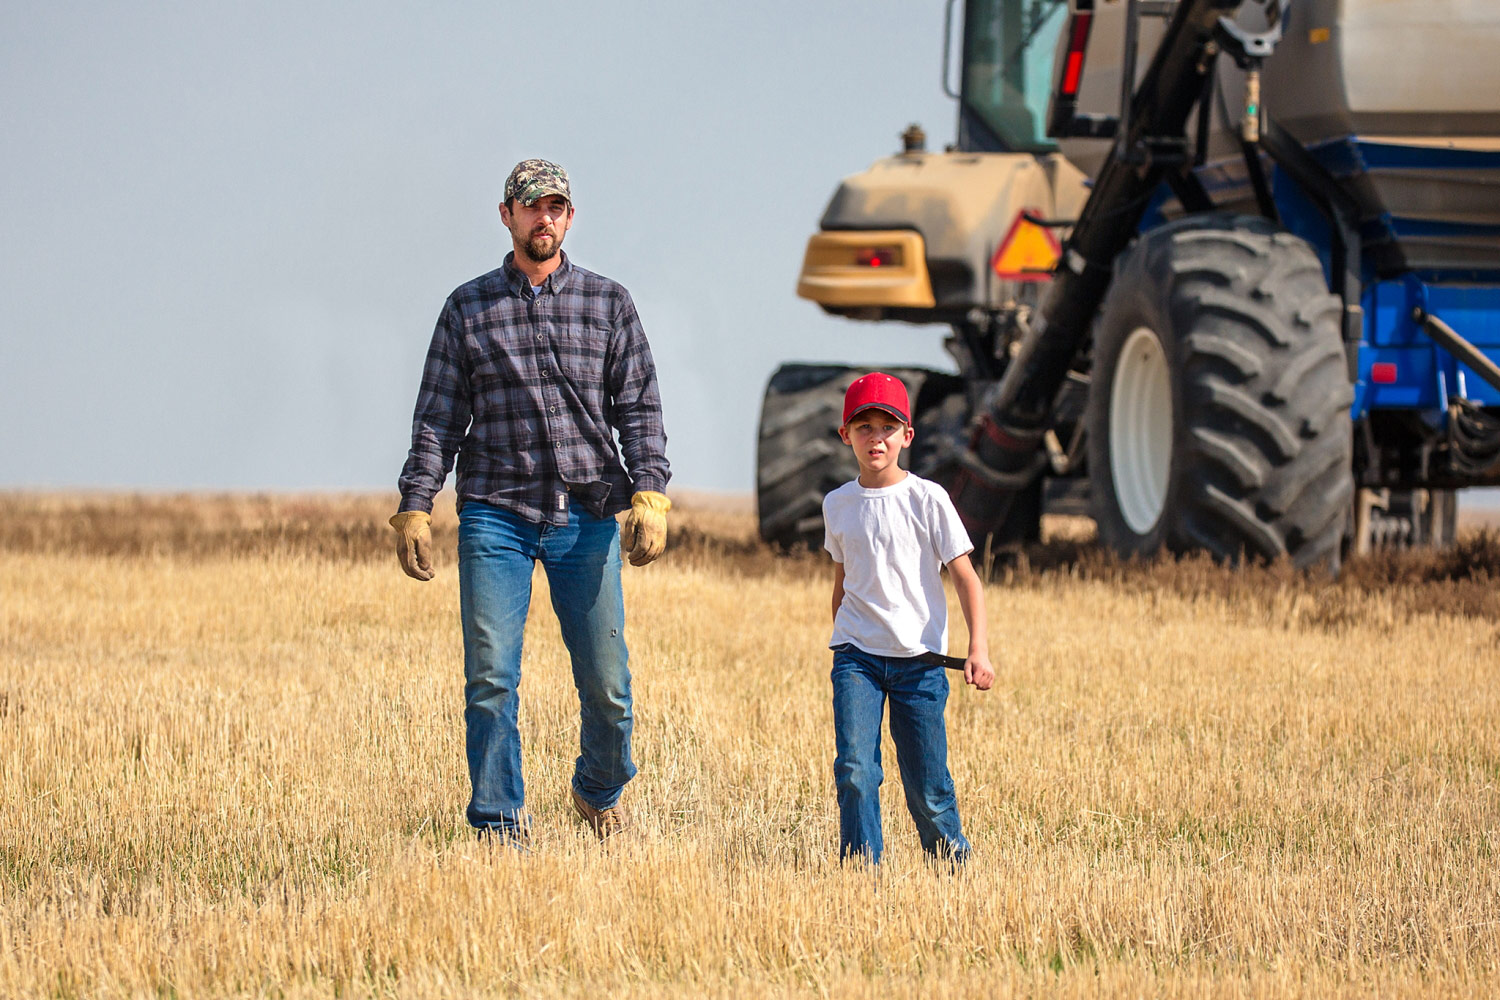 Grower and Son